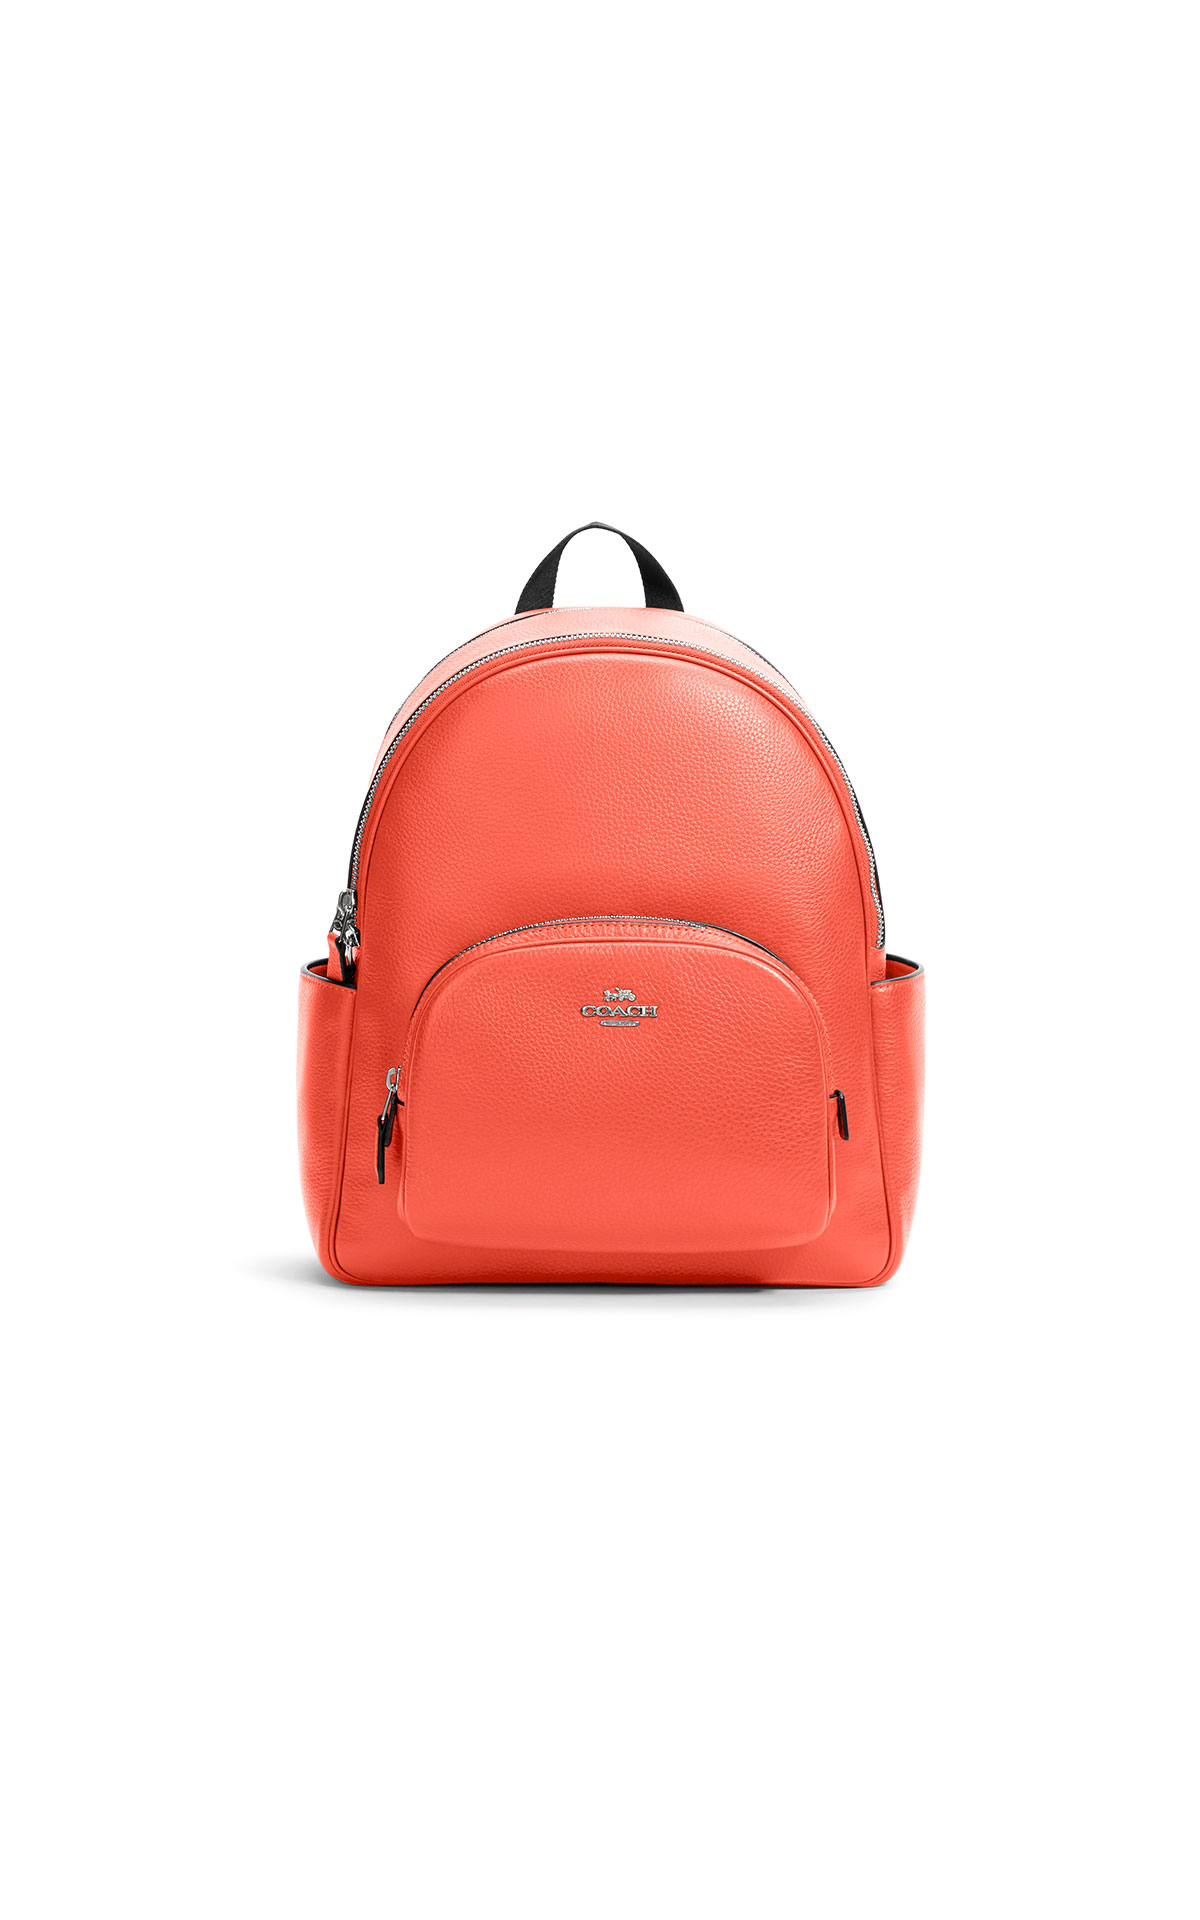 Coach pebbled leather court backpack